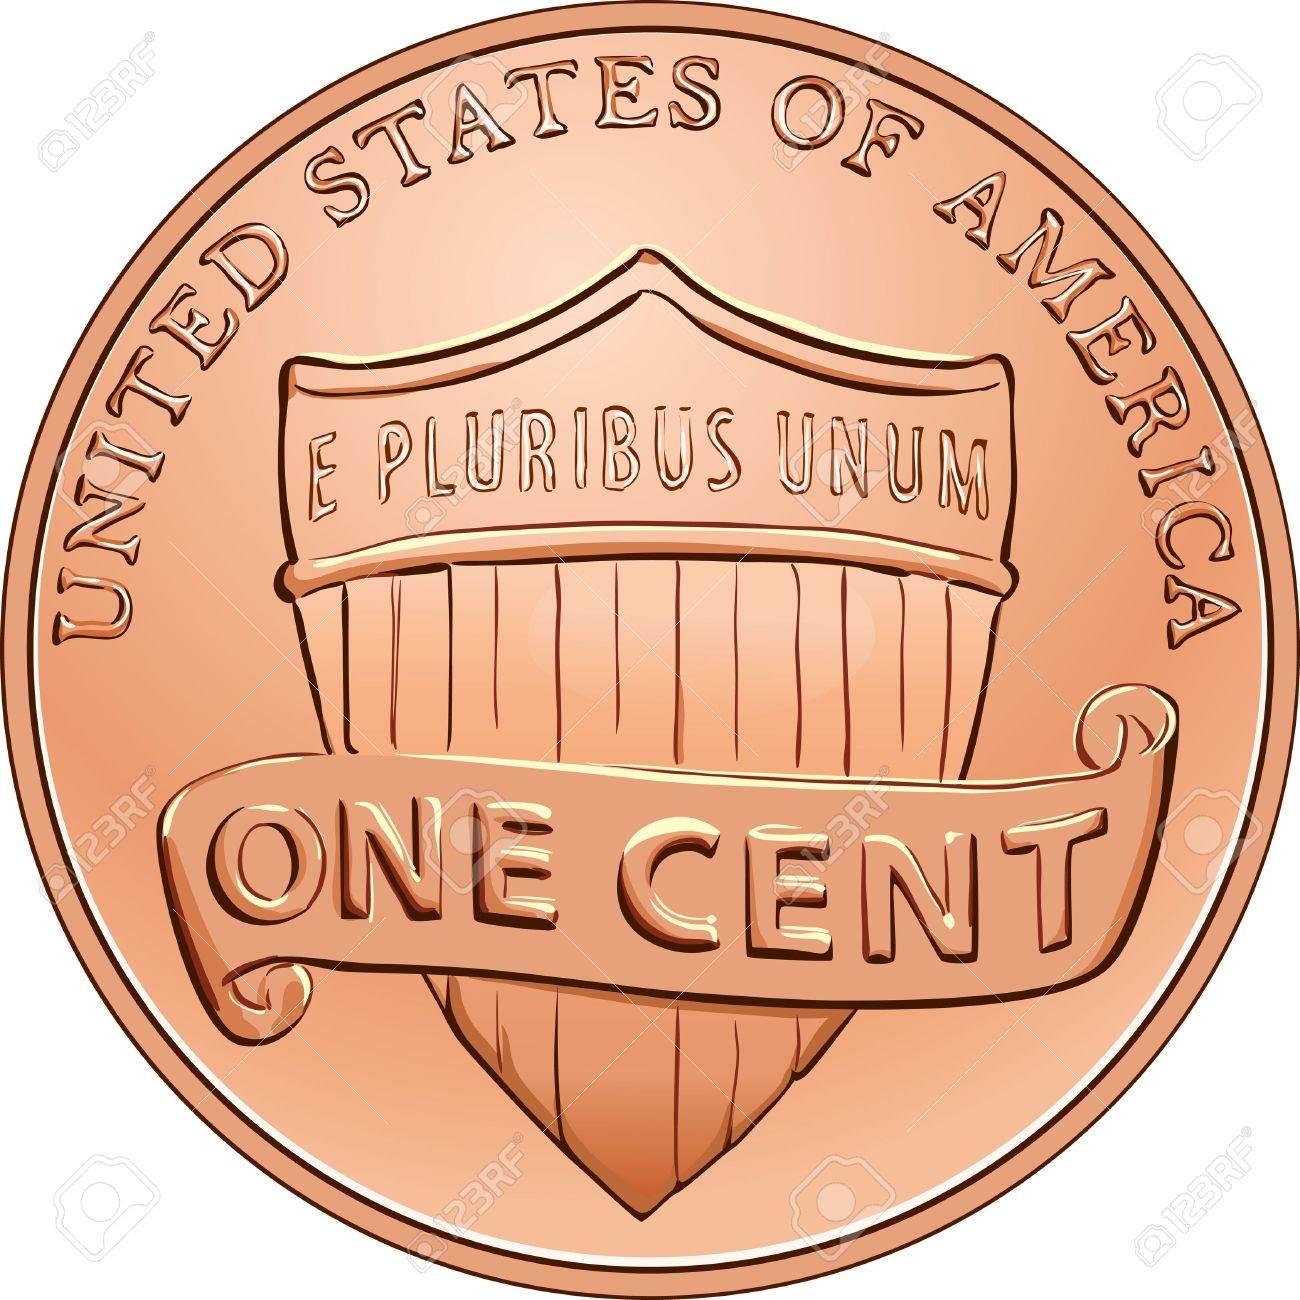 1 penny clipart.